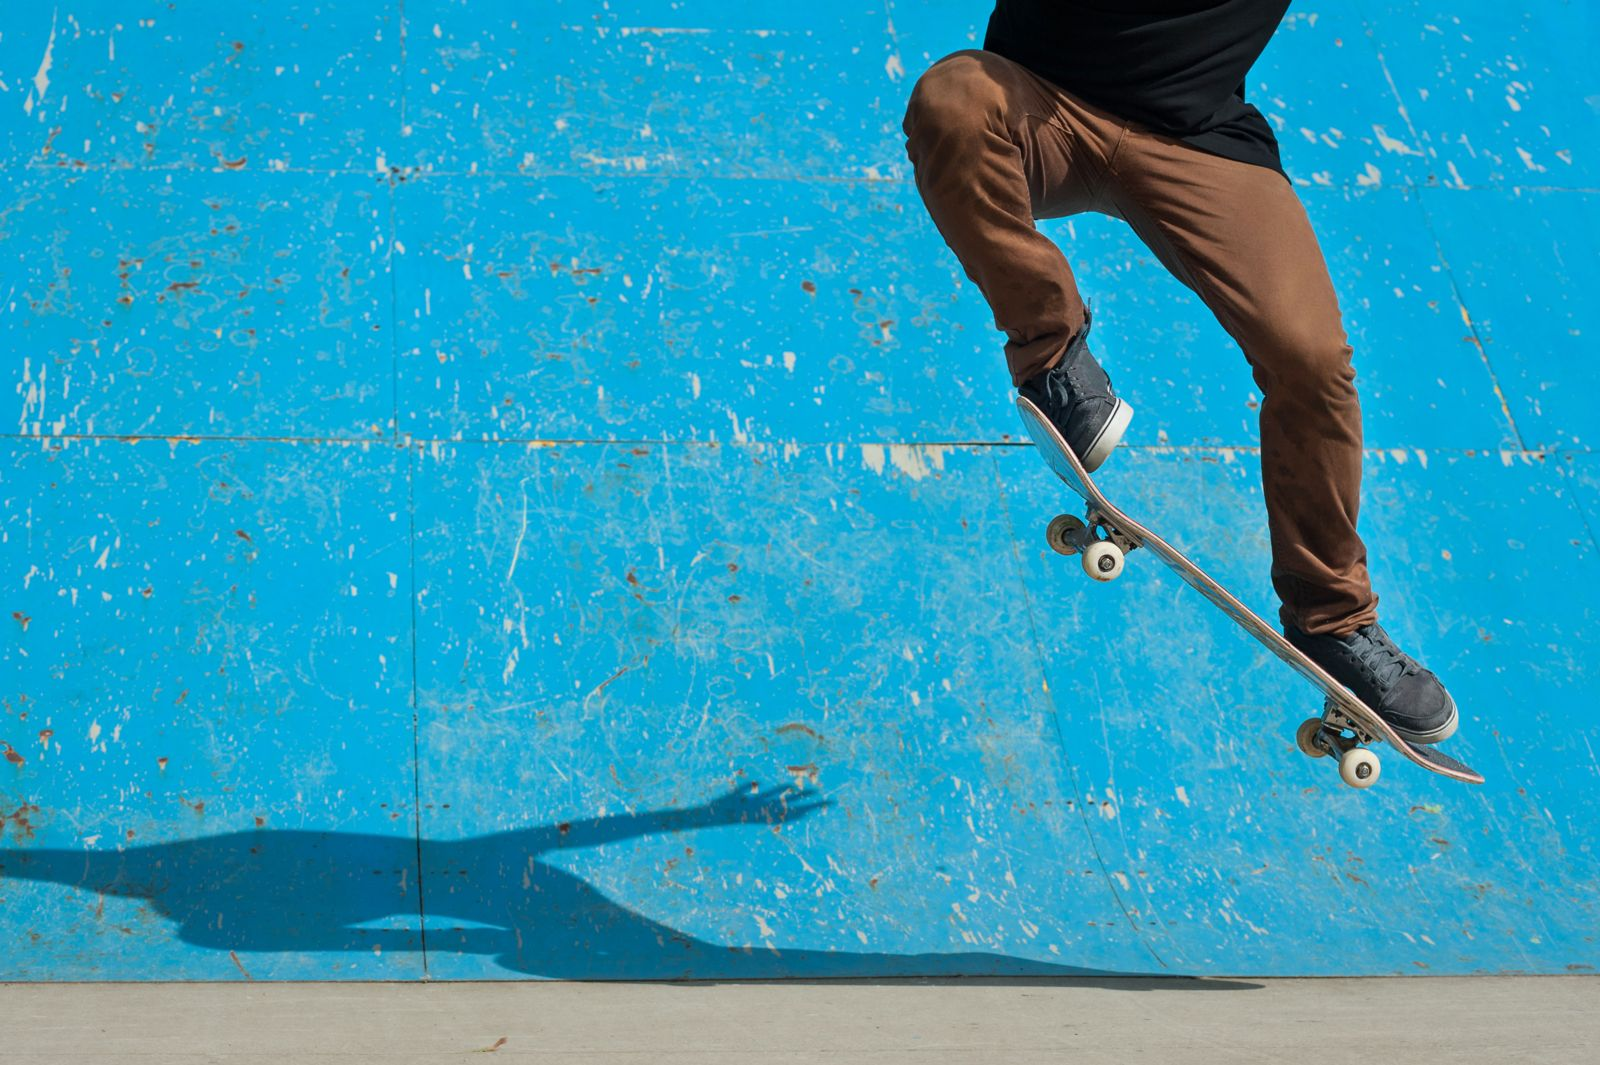 skateboard accident attorney